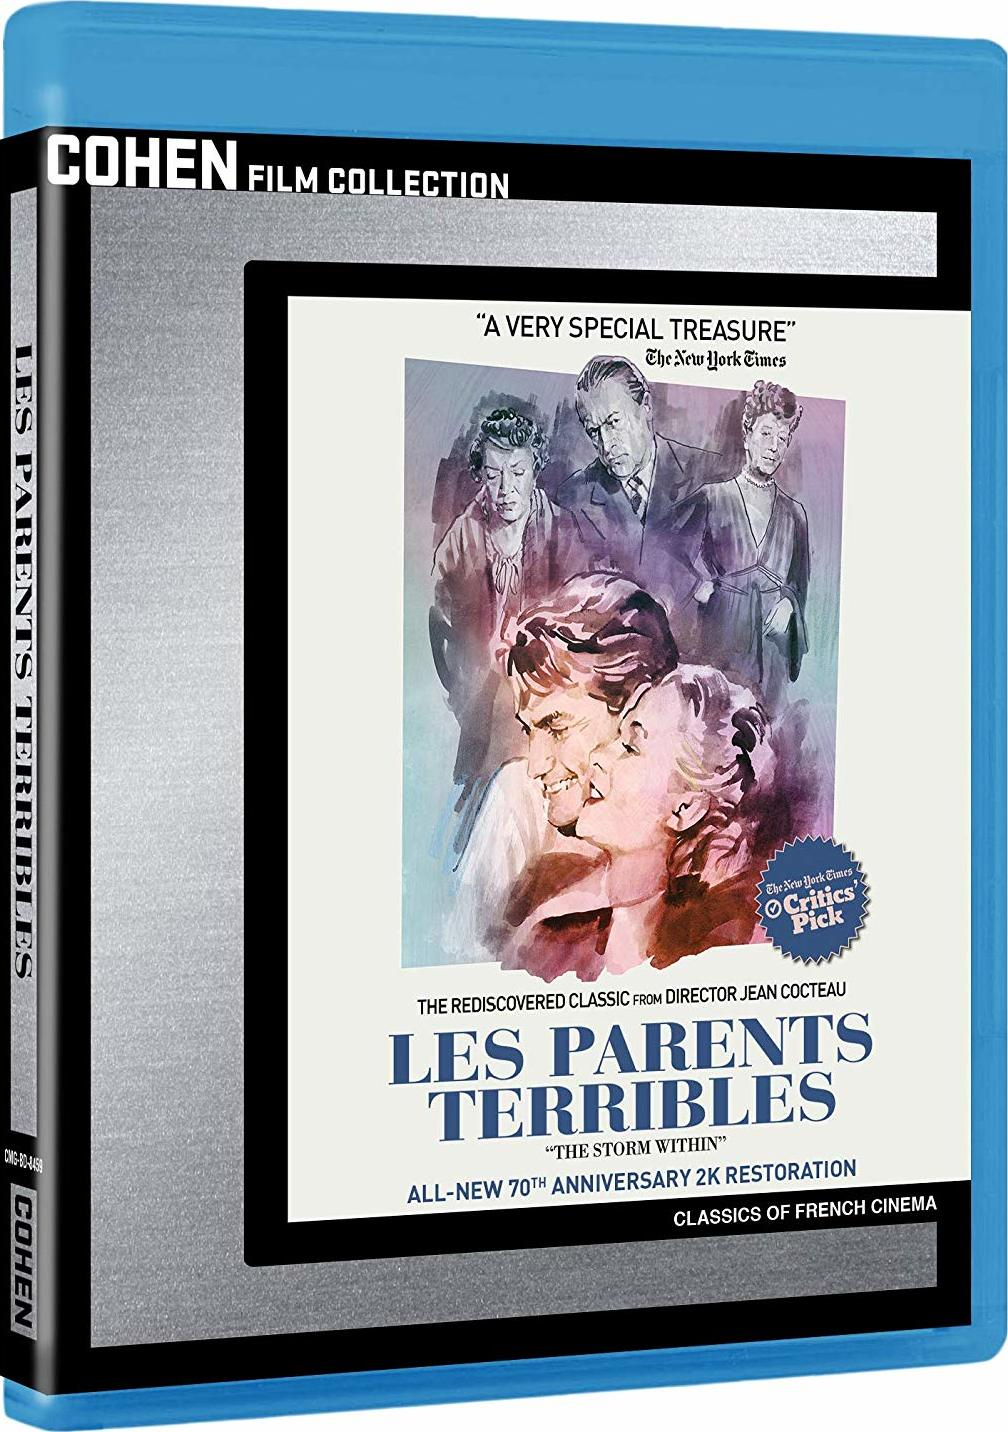 Les Parents Terribles (Cohen Collection)(Blu-ray)(Region A)